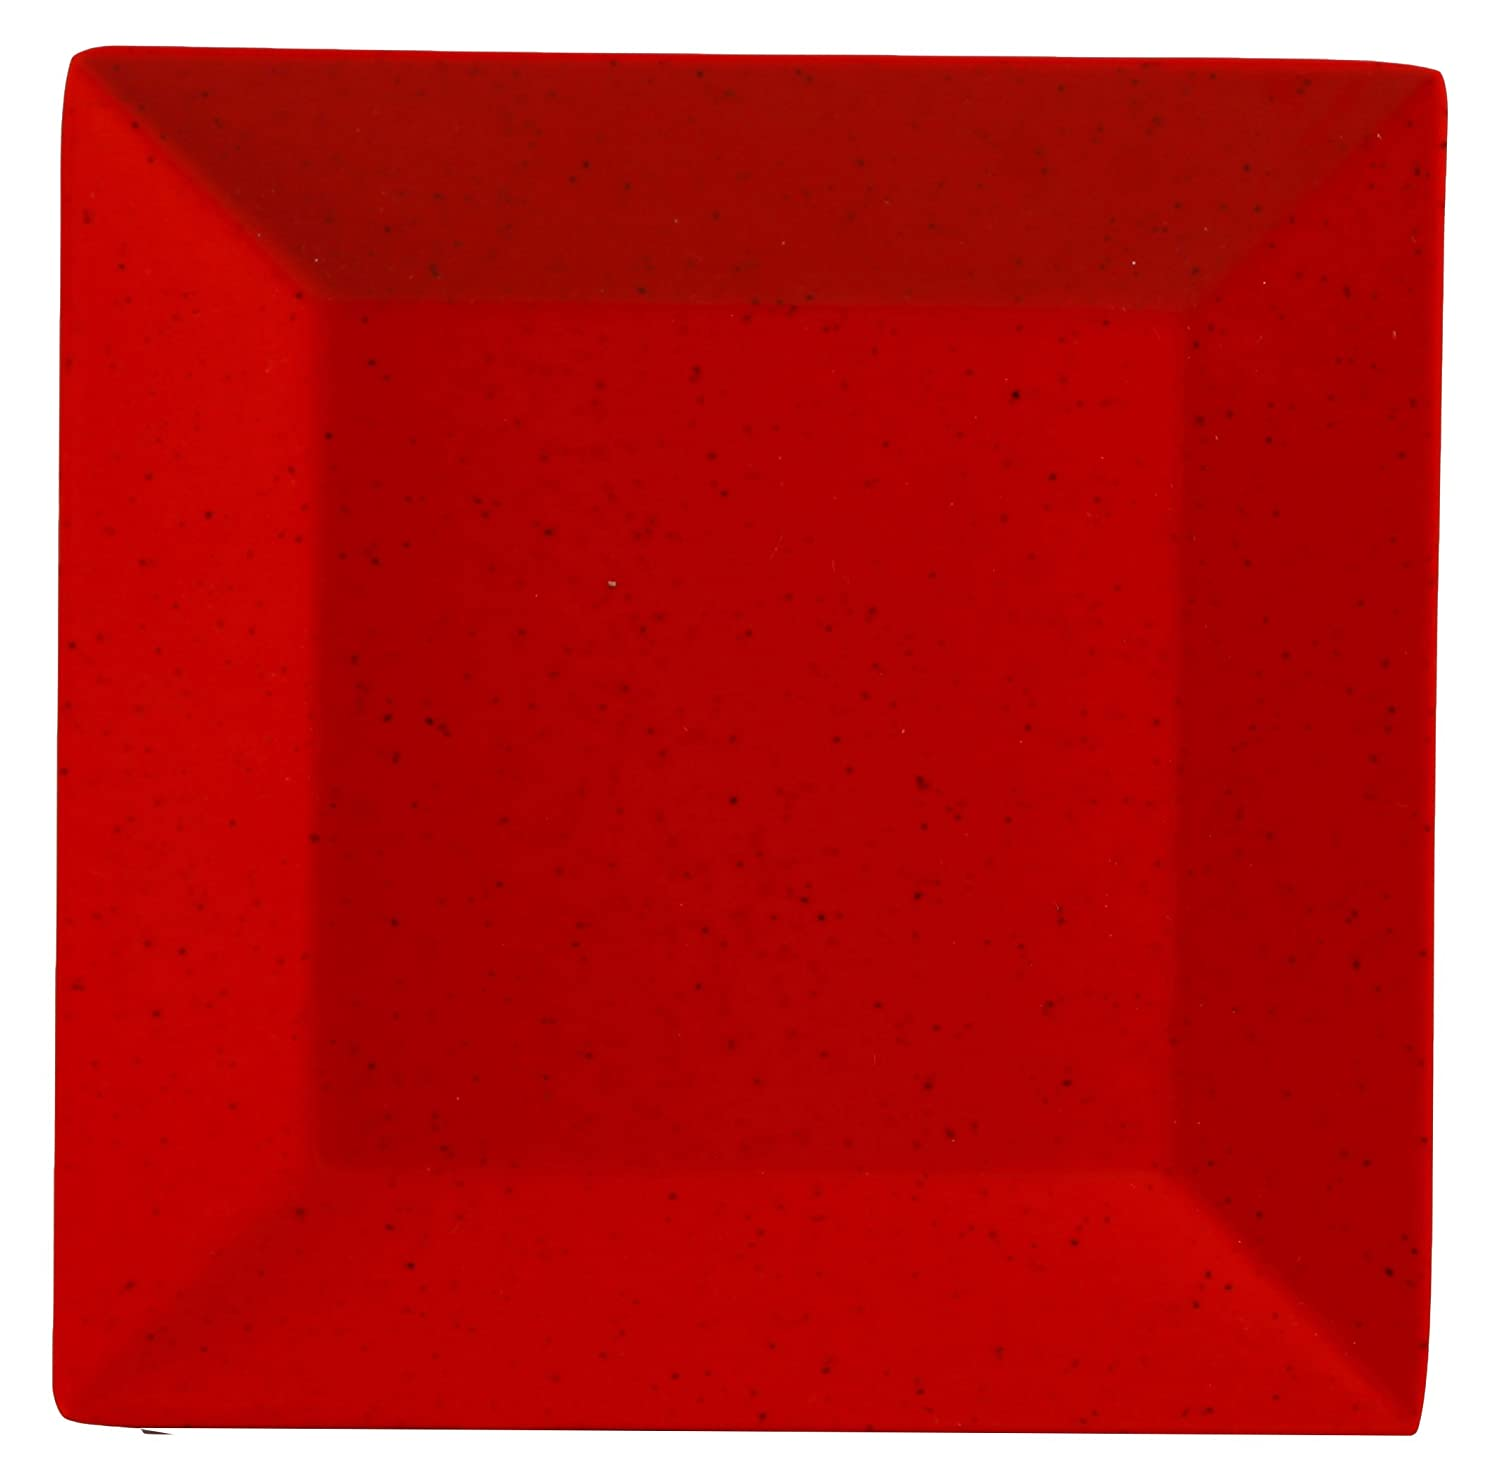 Yanco Me 106 Mexico Plate Square 6 Length 6 Width Melamine Red Color With Black Speckled Pack Of 48 Industrial Scientific